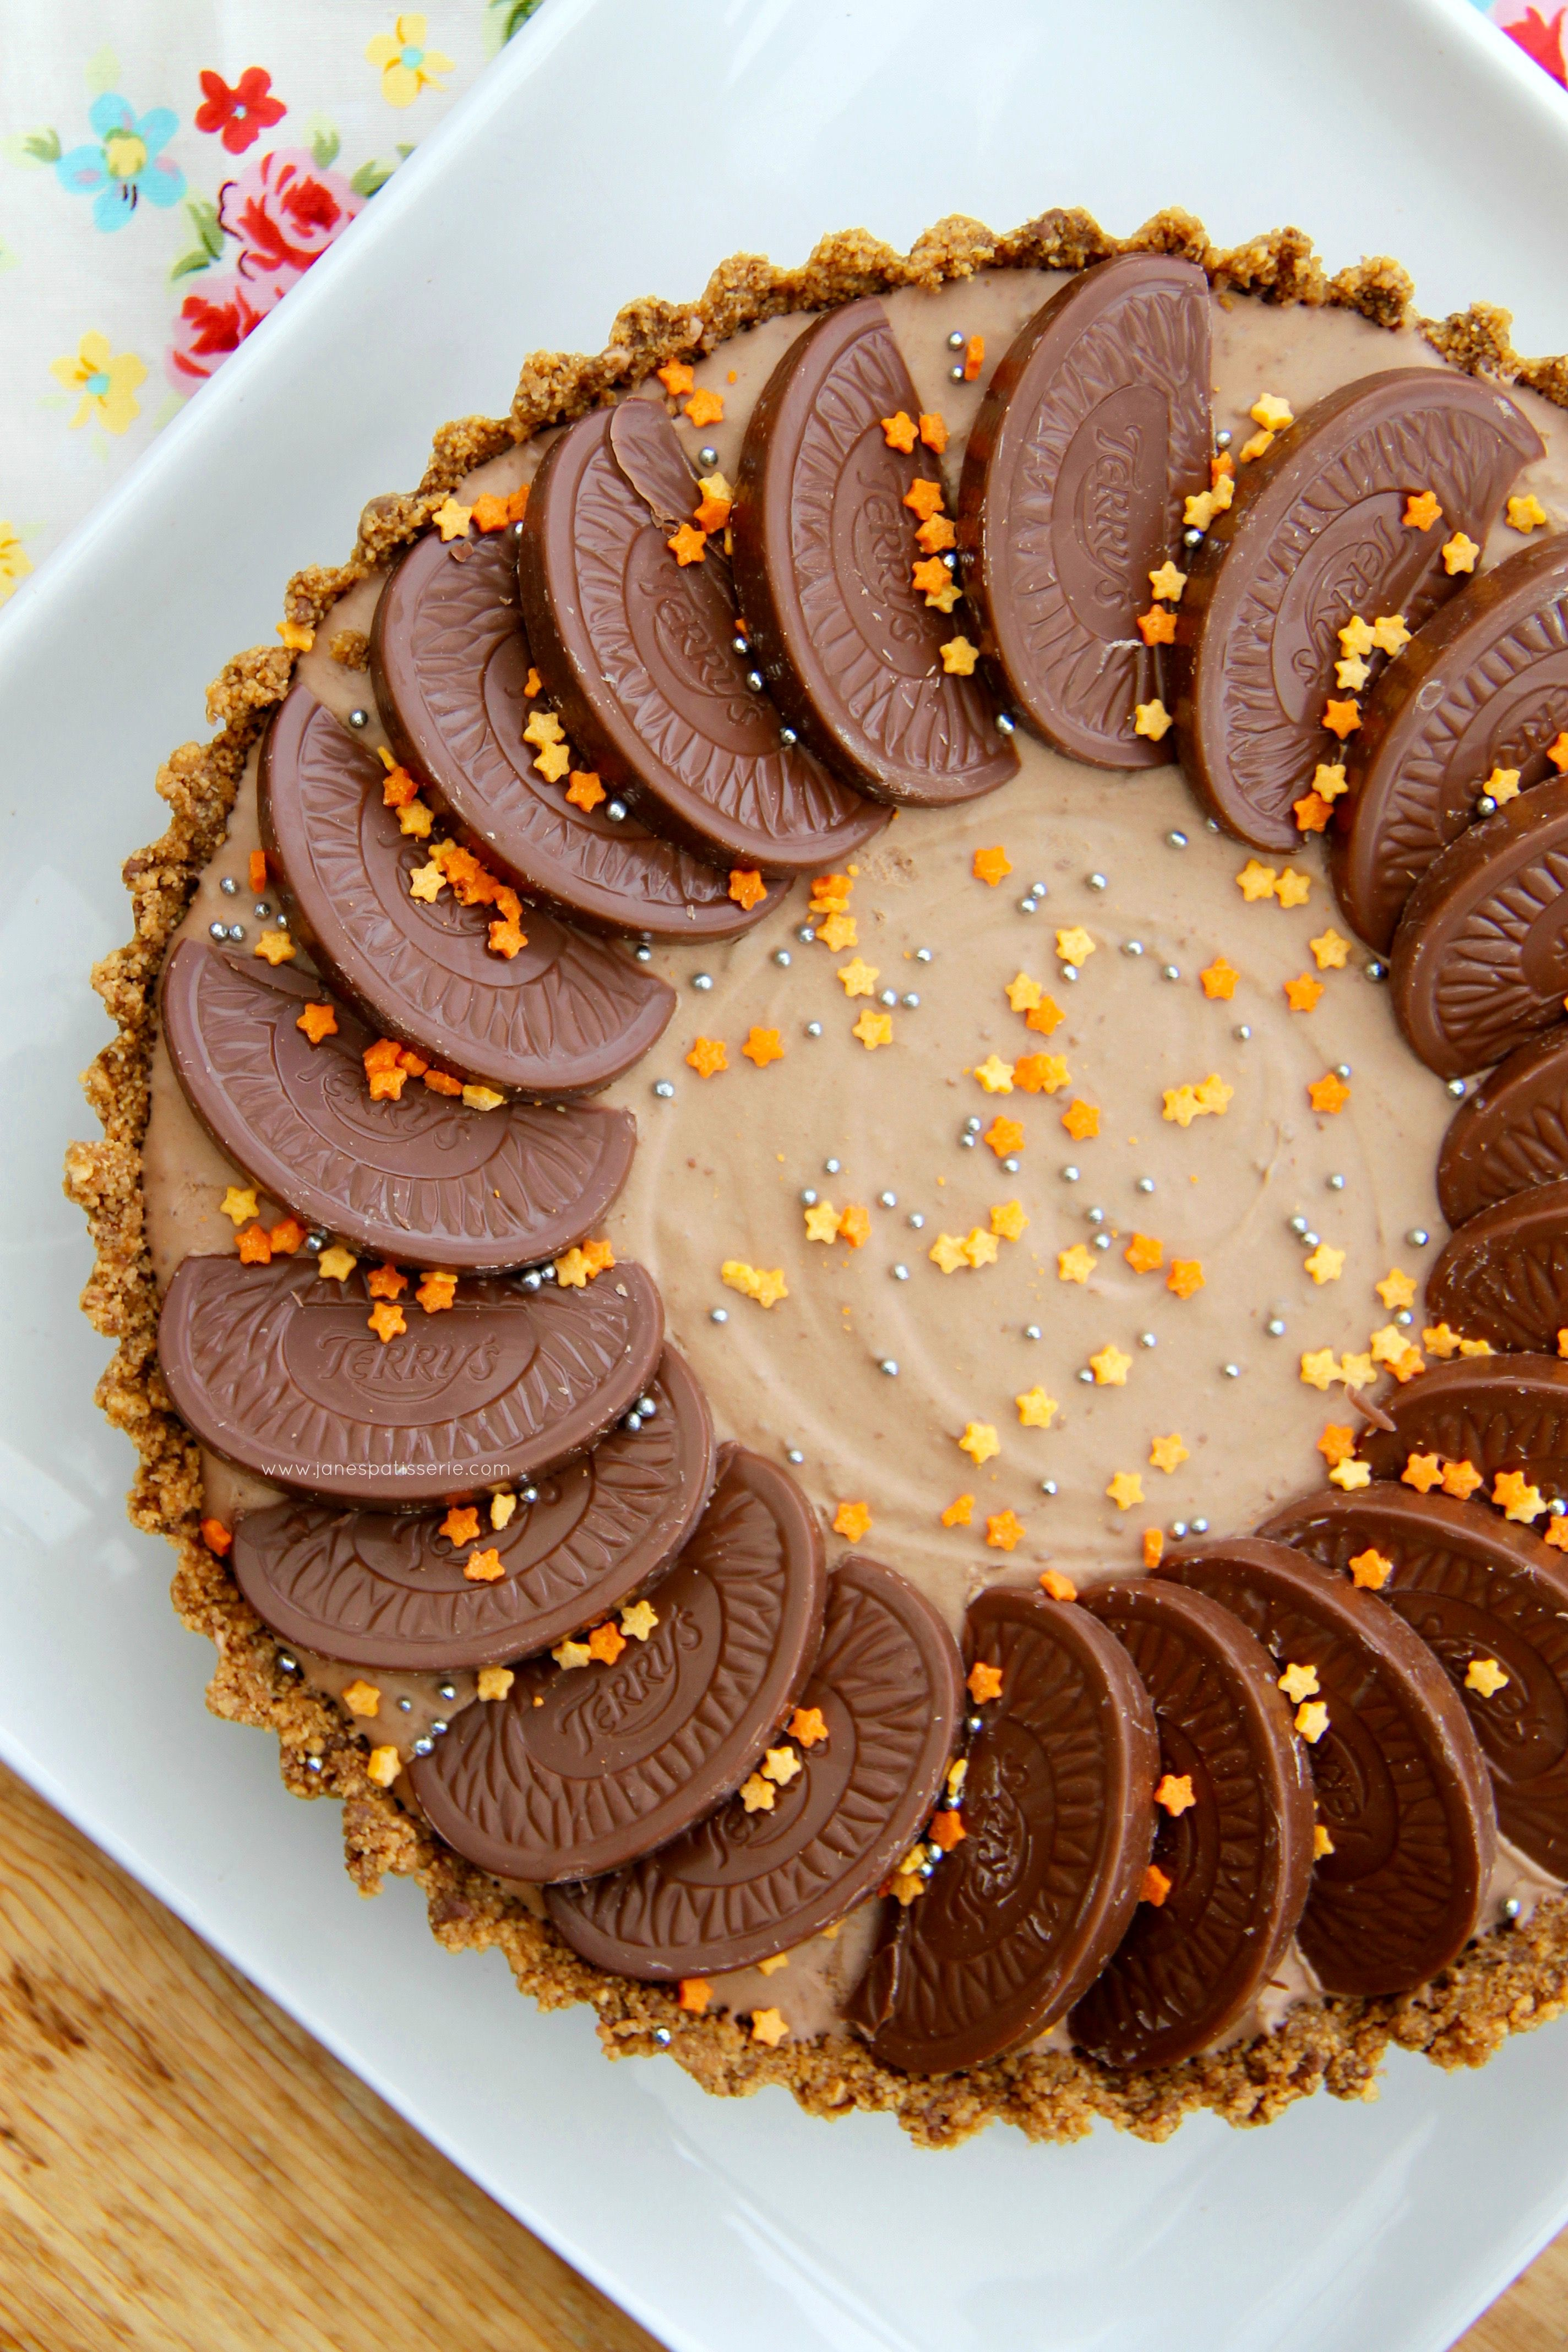 Terry s orange chocolate cake recipe